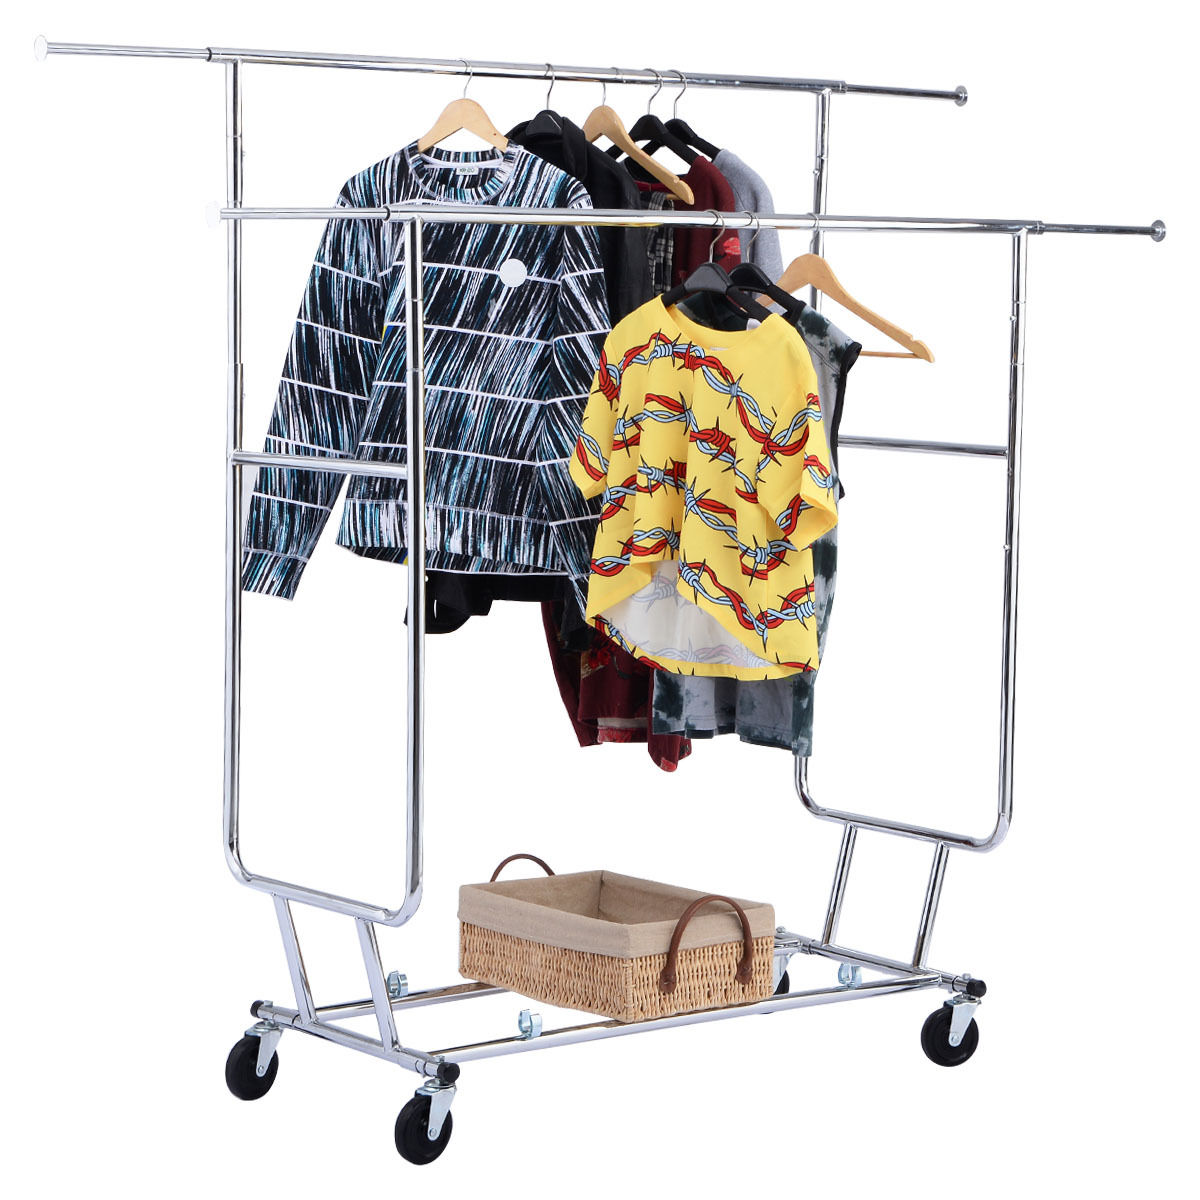 Goplus Commercial Grade Collapsible Clothes Hanger Rolling Double Garment Rack Laundry Clothes Drying Rack HW52156